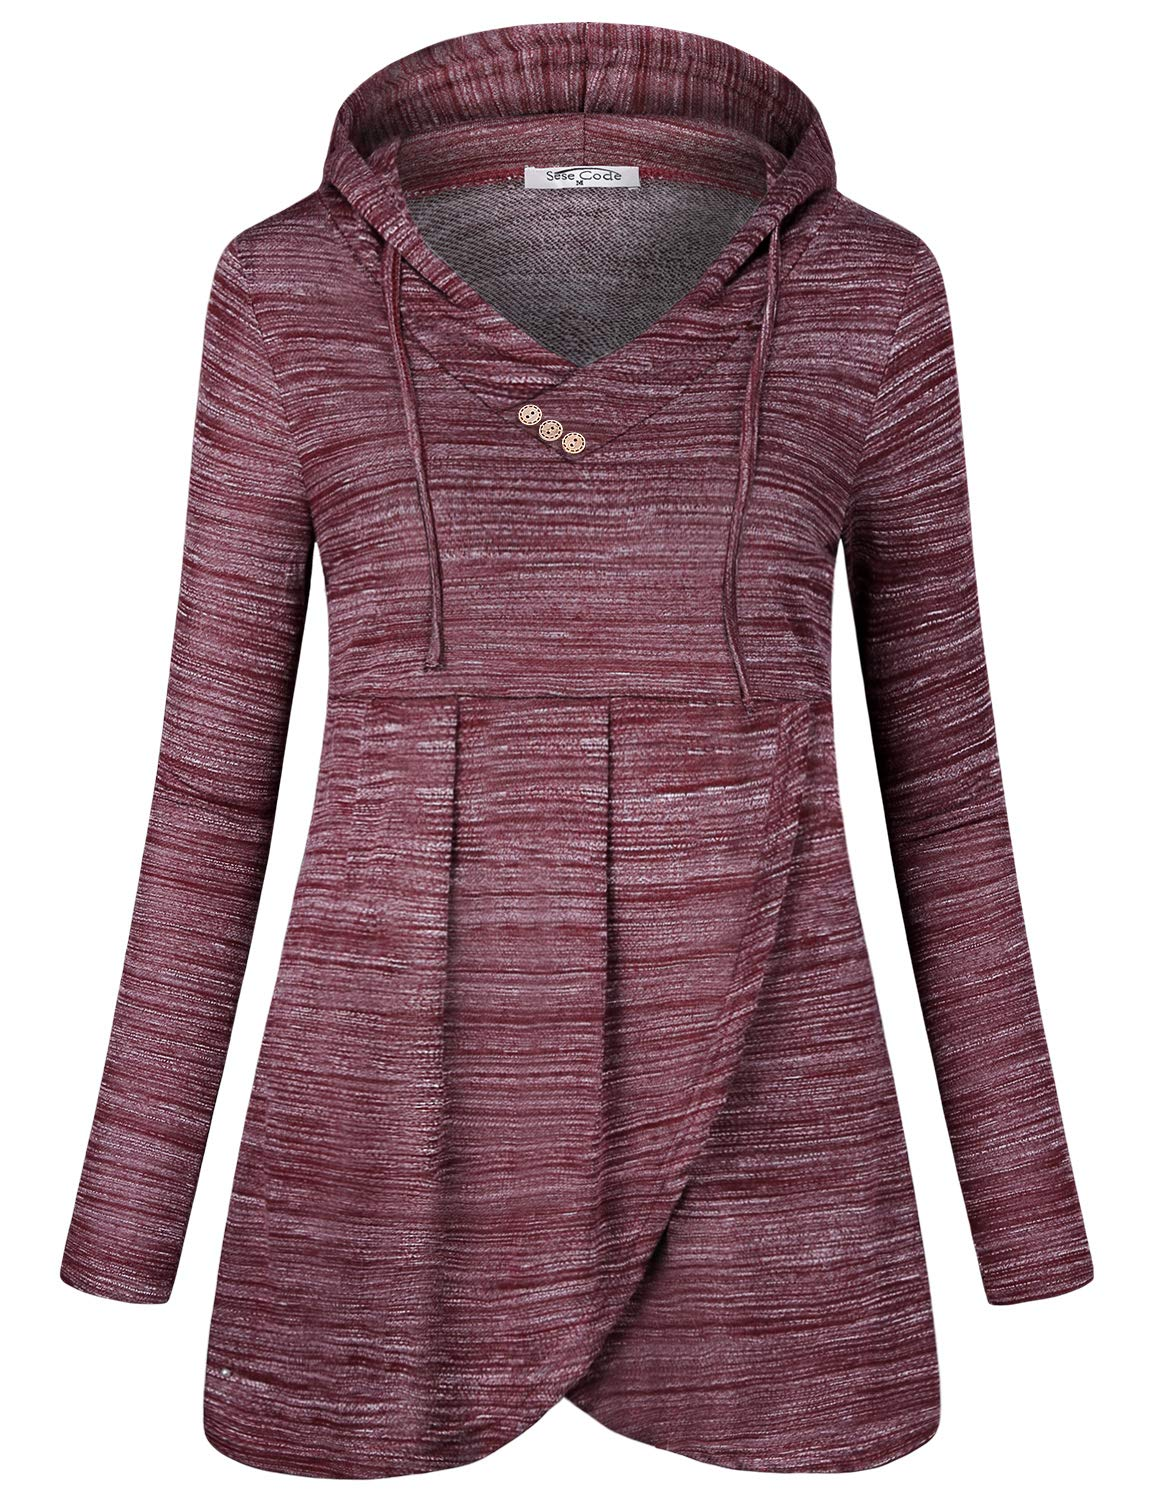 SeSe Code Burgundy Hoodie Sweatshirts for Women Cute Tops Ladies Shirts Long Sleeve Style Spring Workout Clothes Maroon Aesthetic Sweatshirt Wine Red XLarge